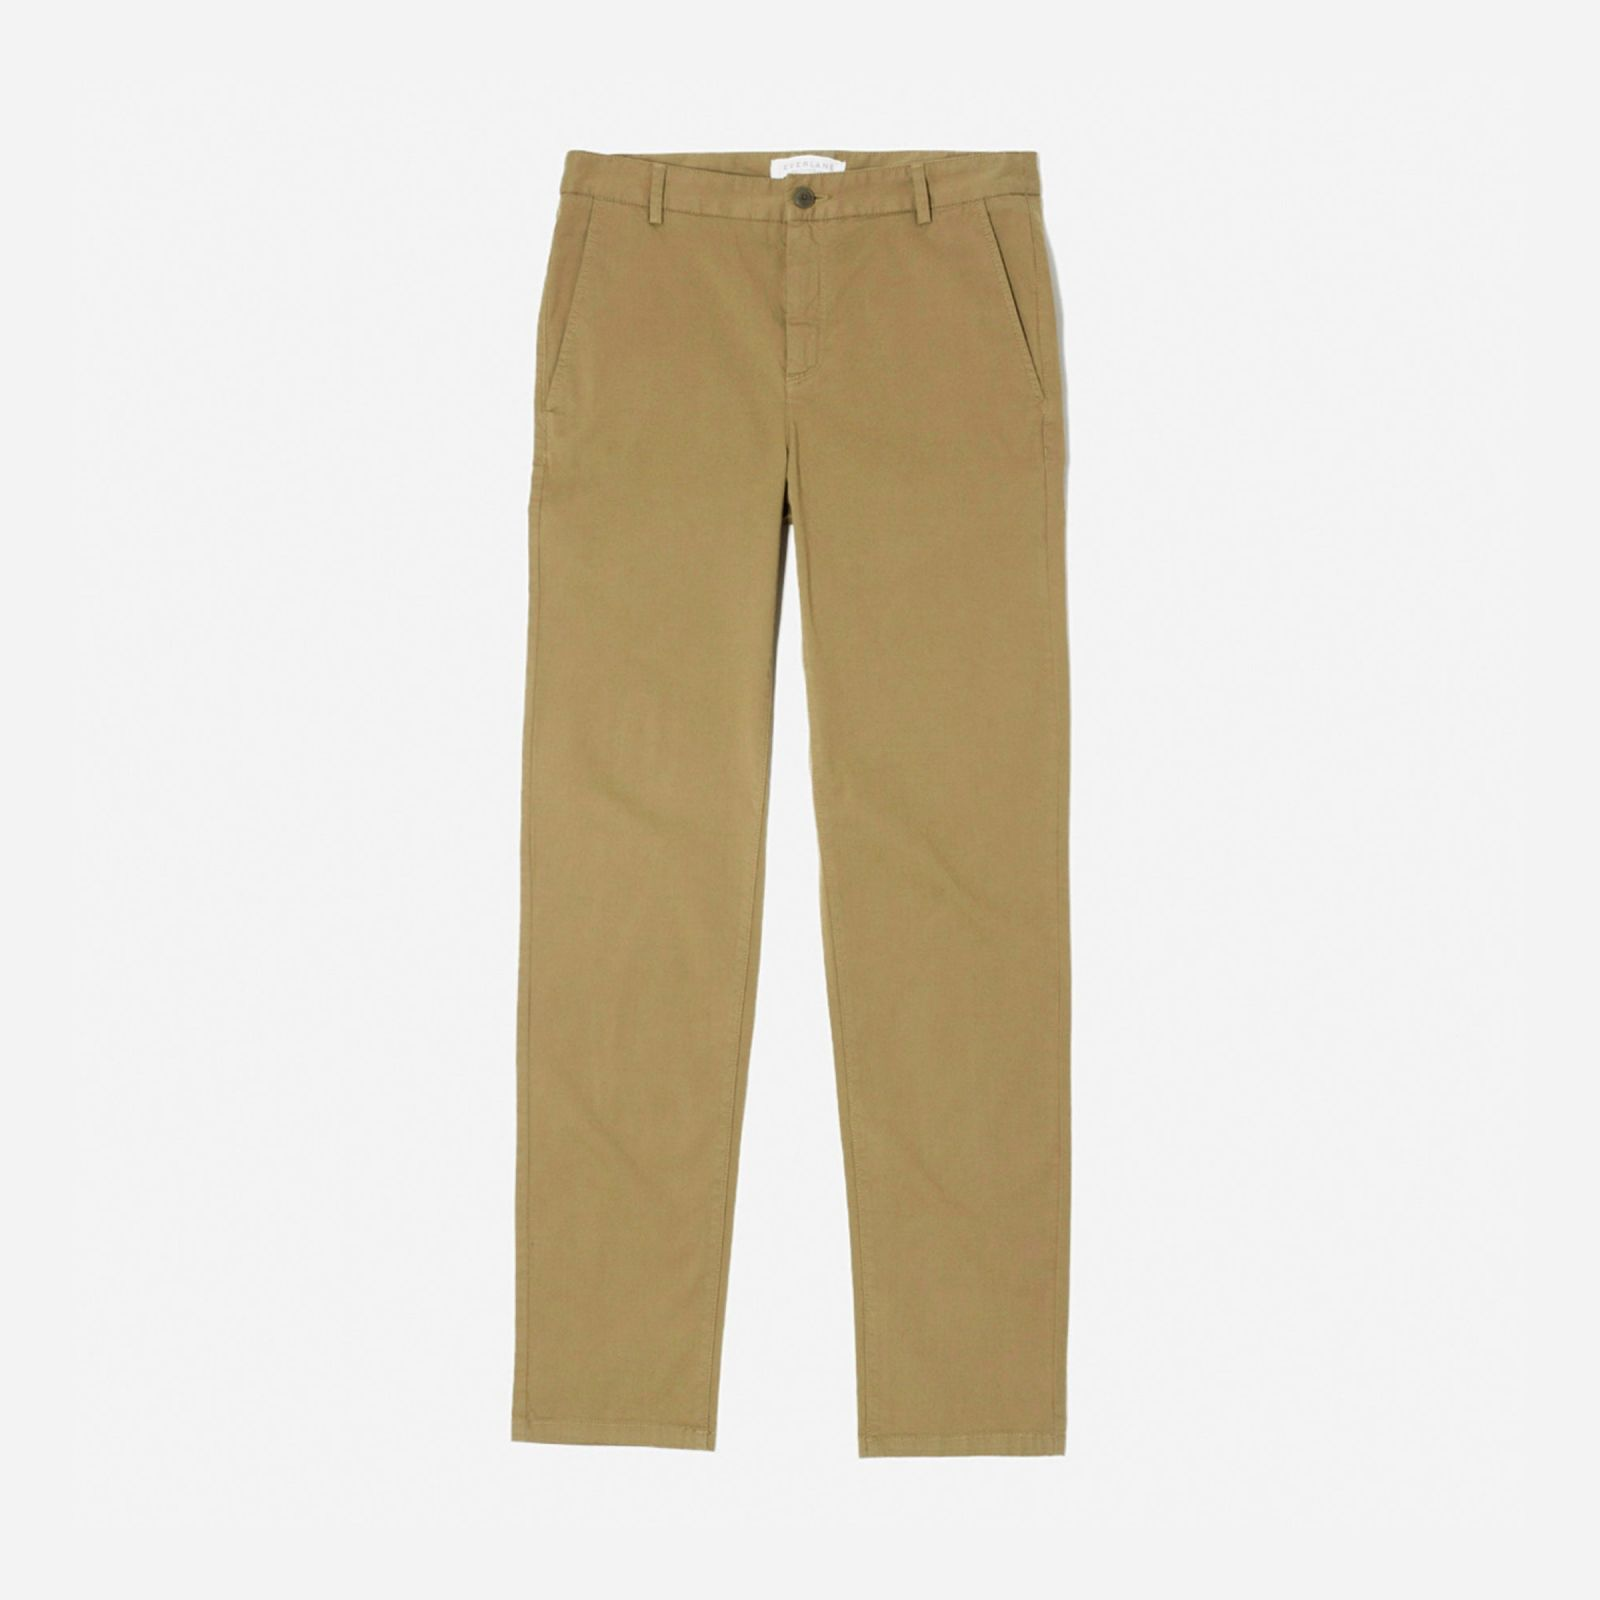 men's midweight slim chino by everlane in ochre, size 34x32